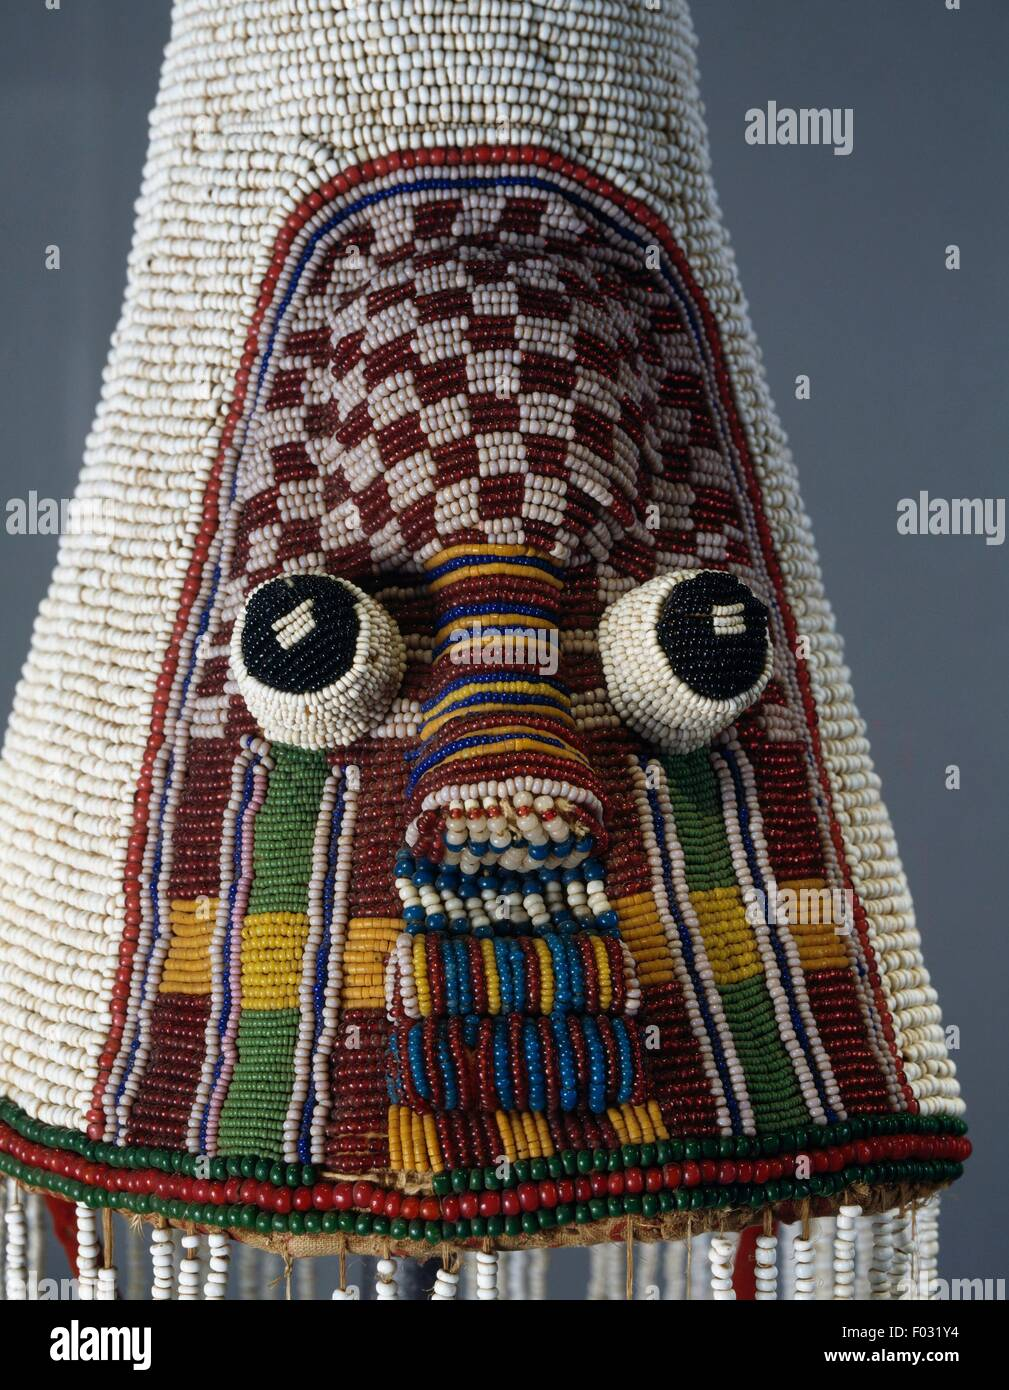 Ade, glass bead royal ceremonial headdress, Yoruba, Nigeria. Detail. - Stock Image